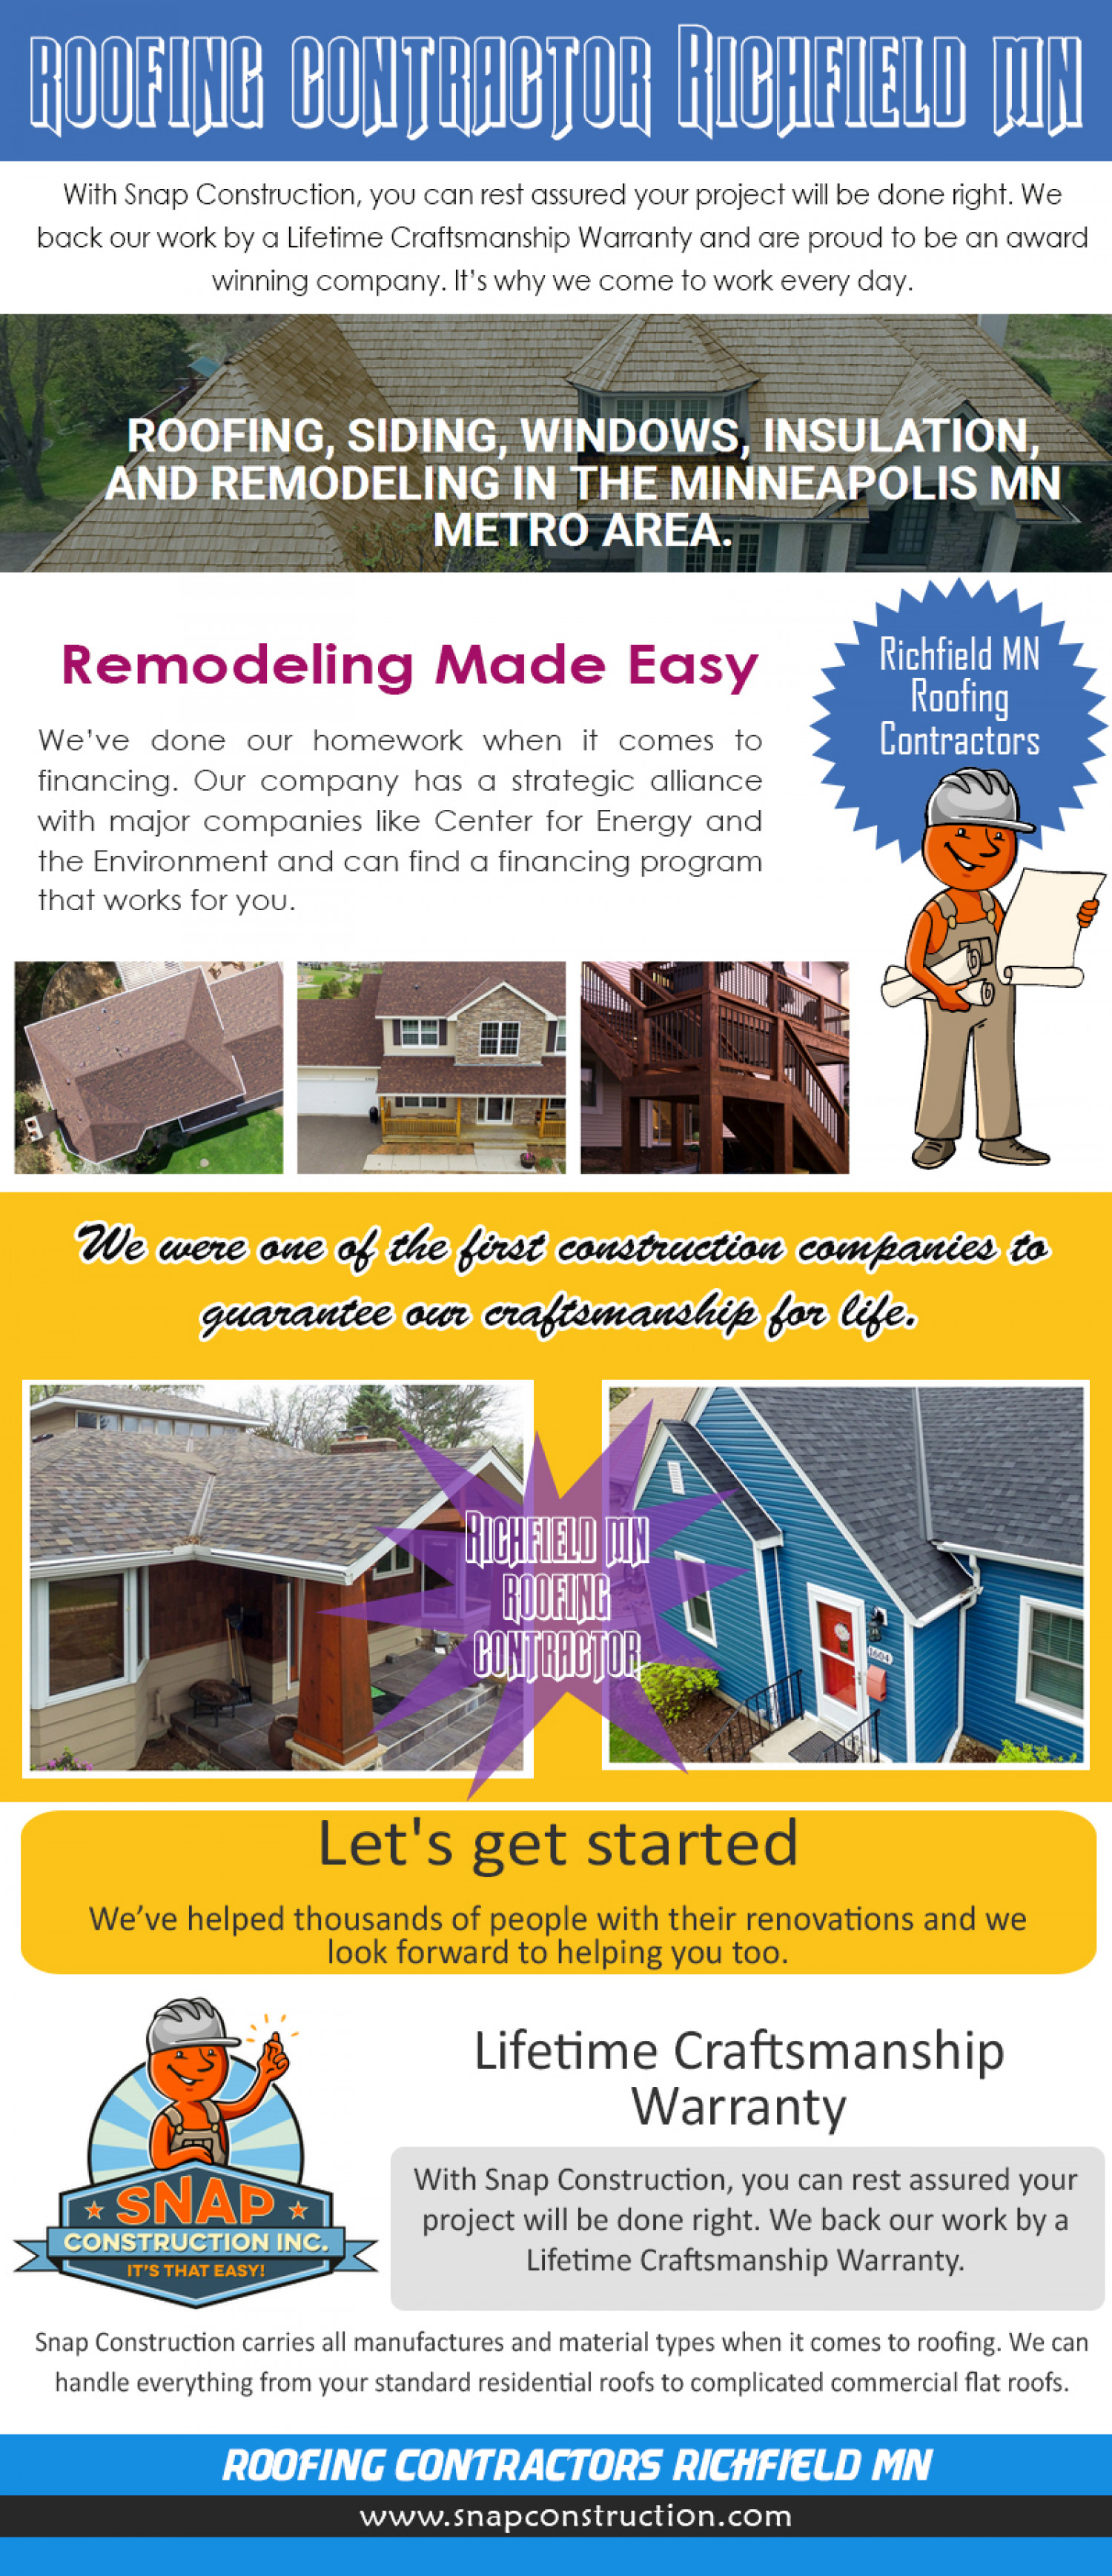 Roofing Contractor Richfield MN Infographic